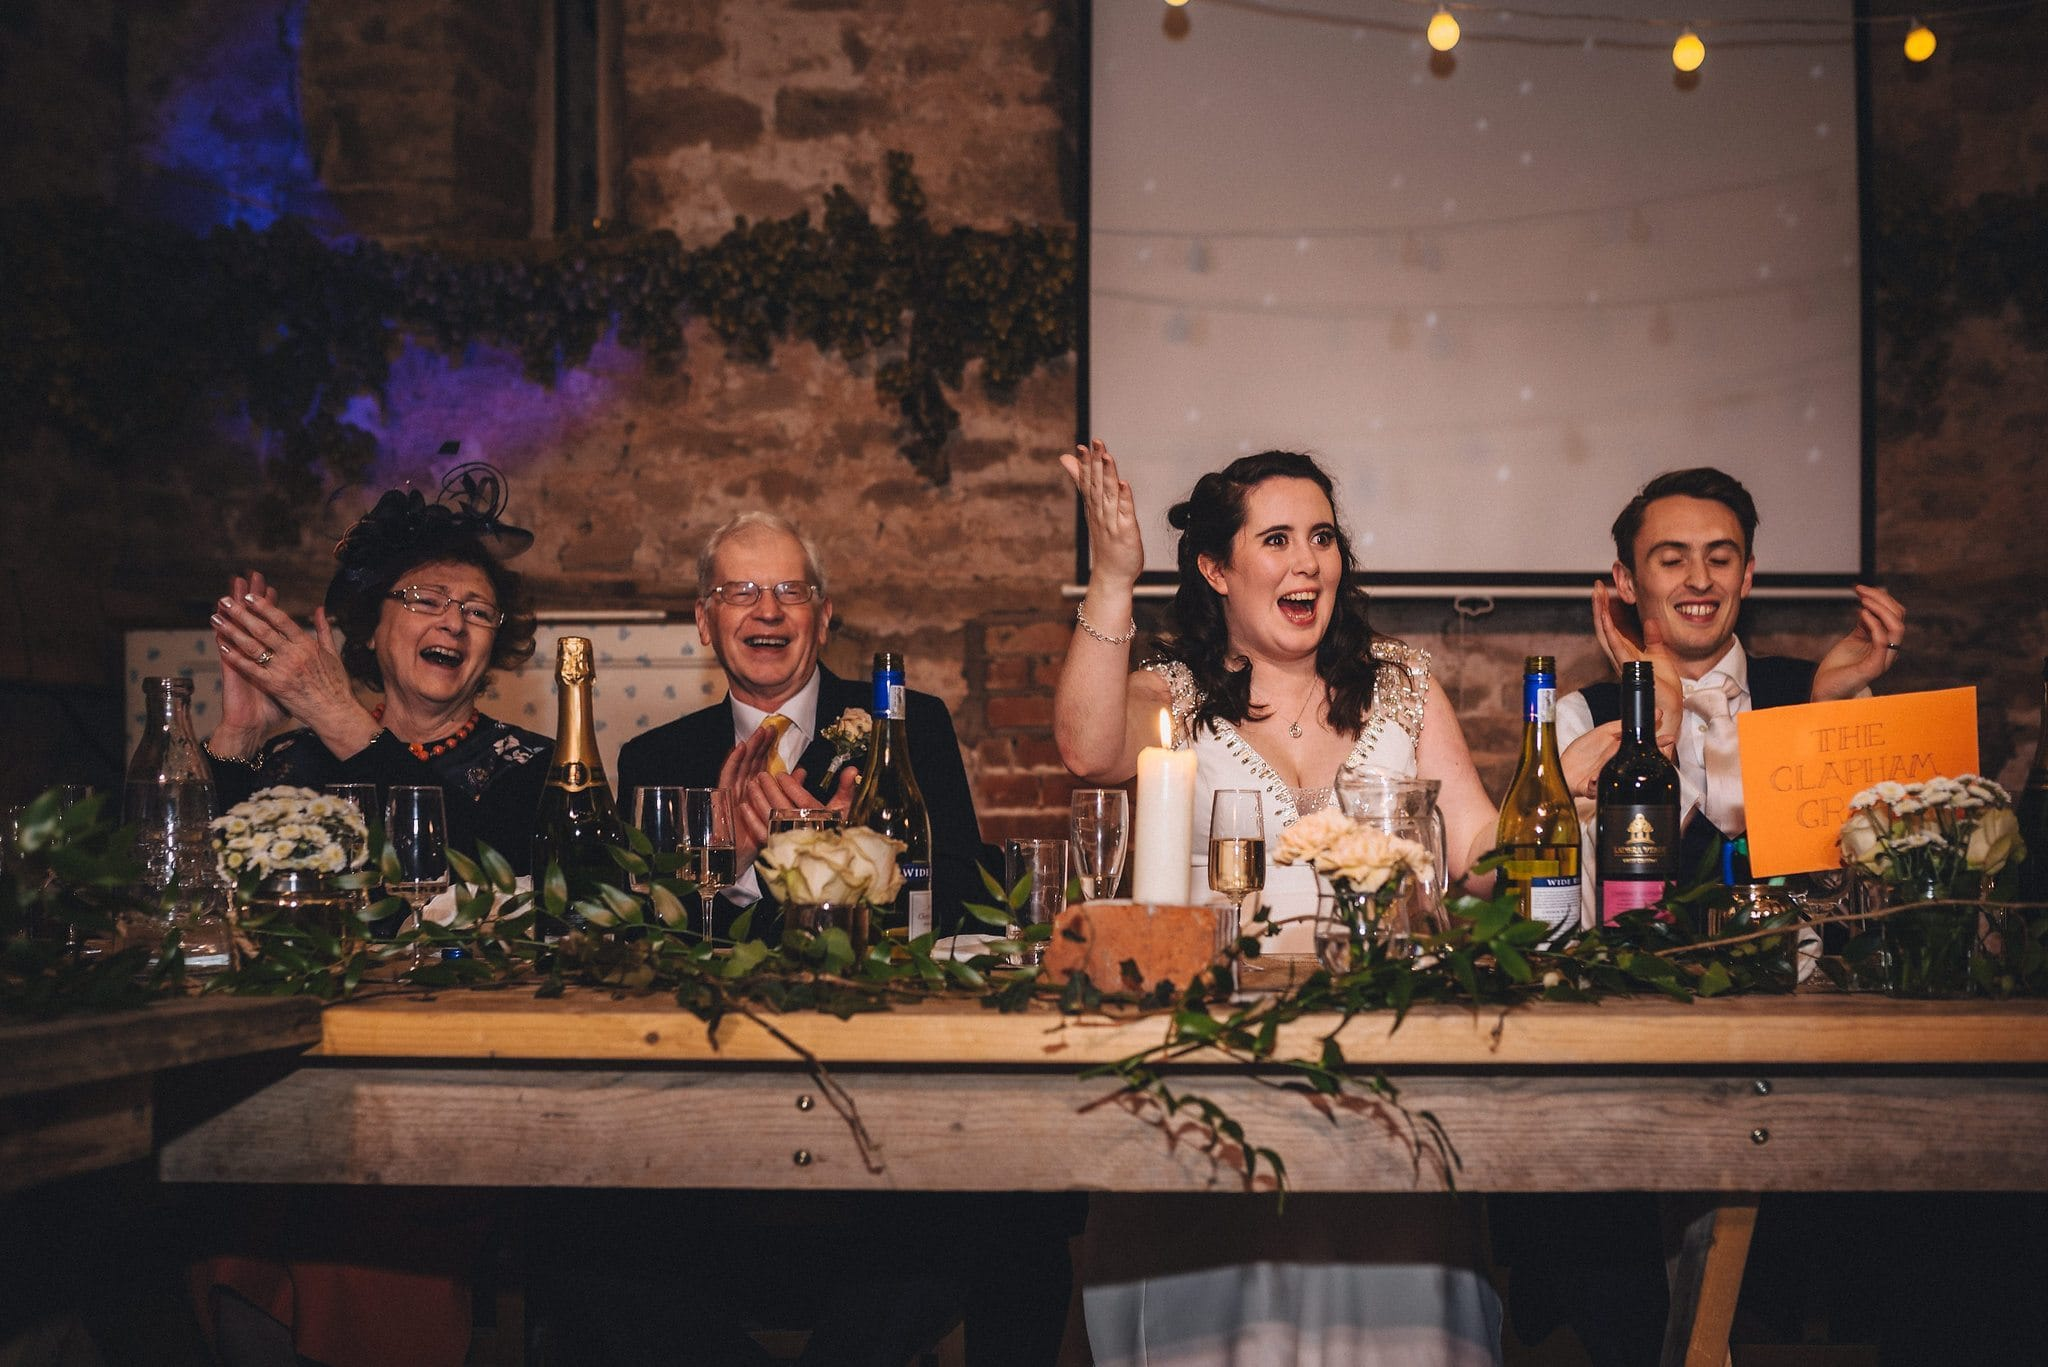 Bride gestures happily to her bridesmaids as they make a speech, rest of top table laughs and applauds